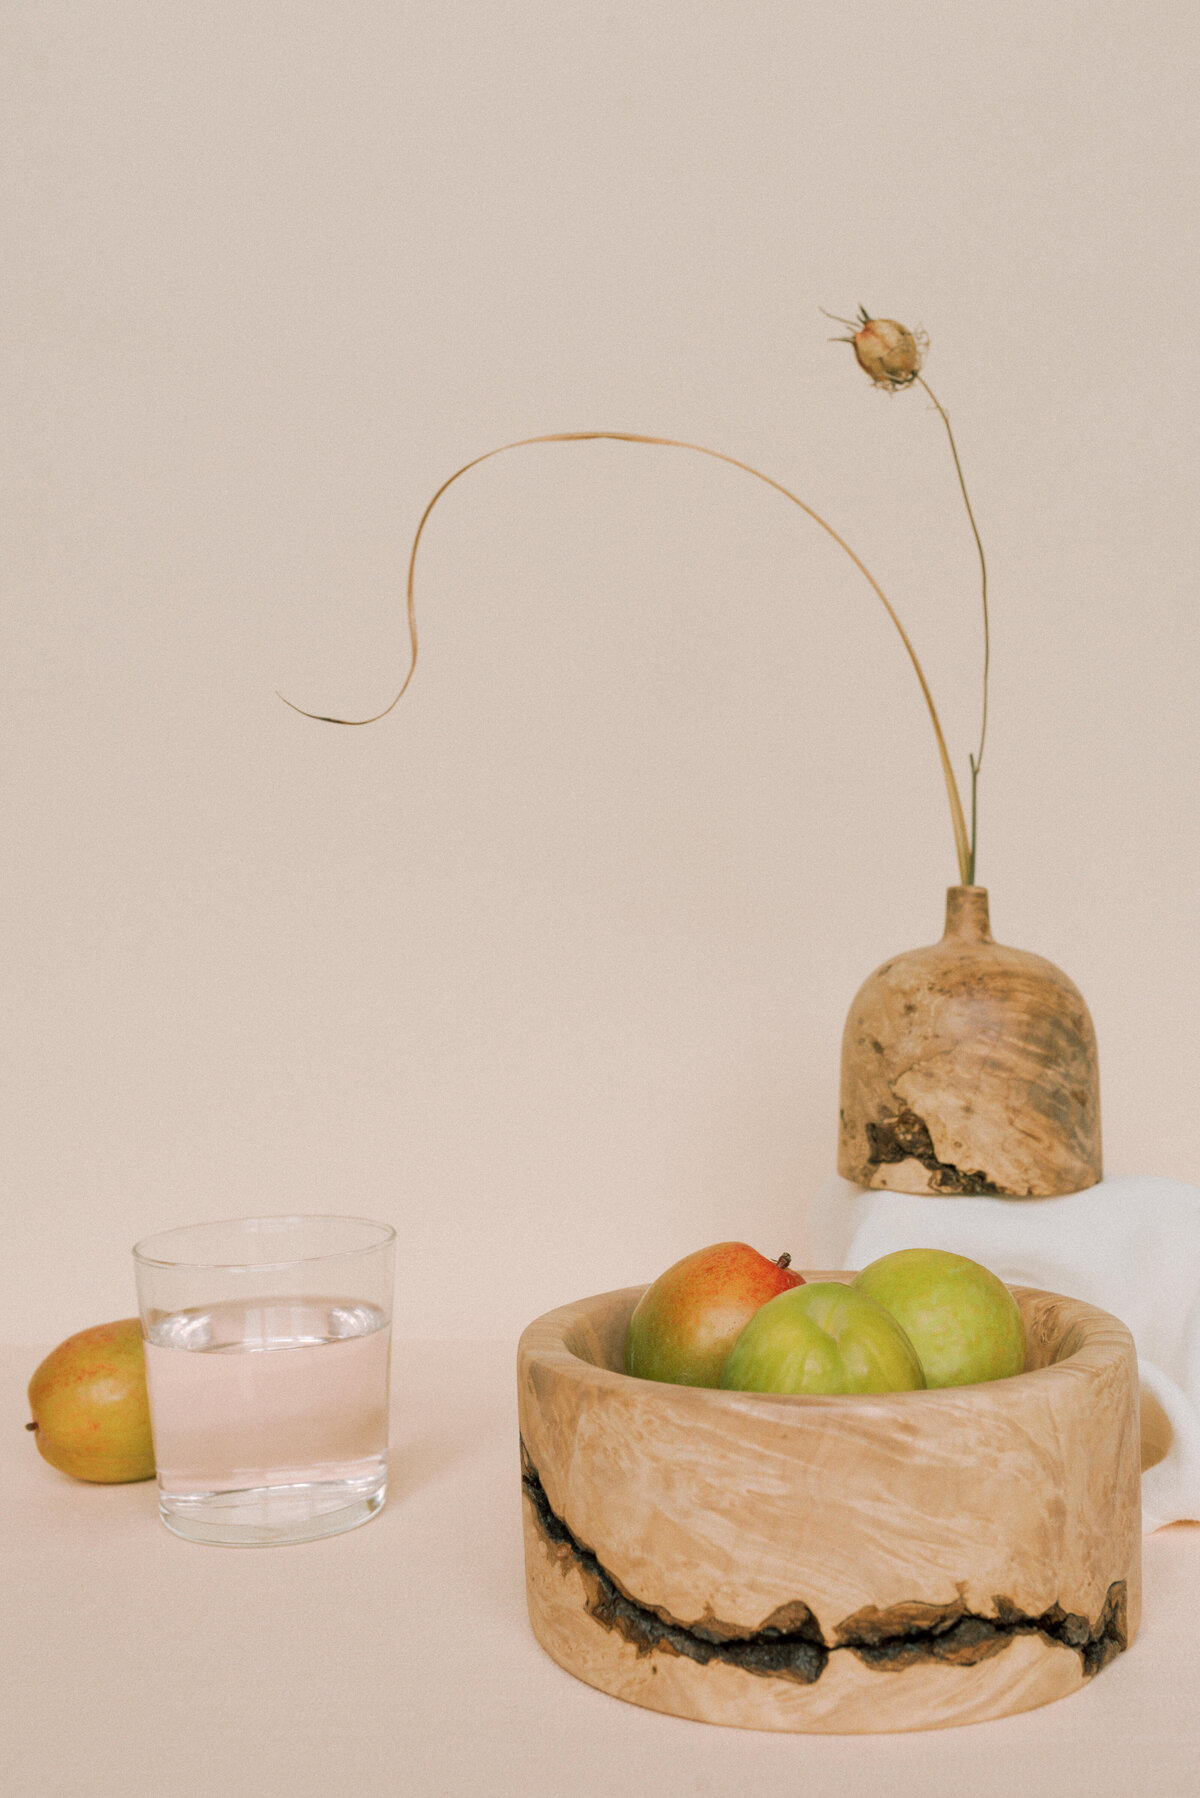 Handcrafted bowls and vase on a table